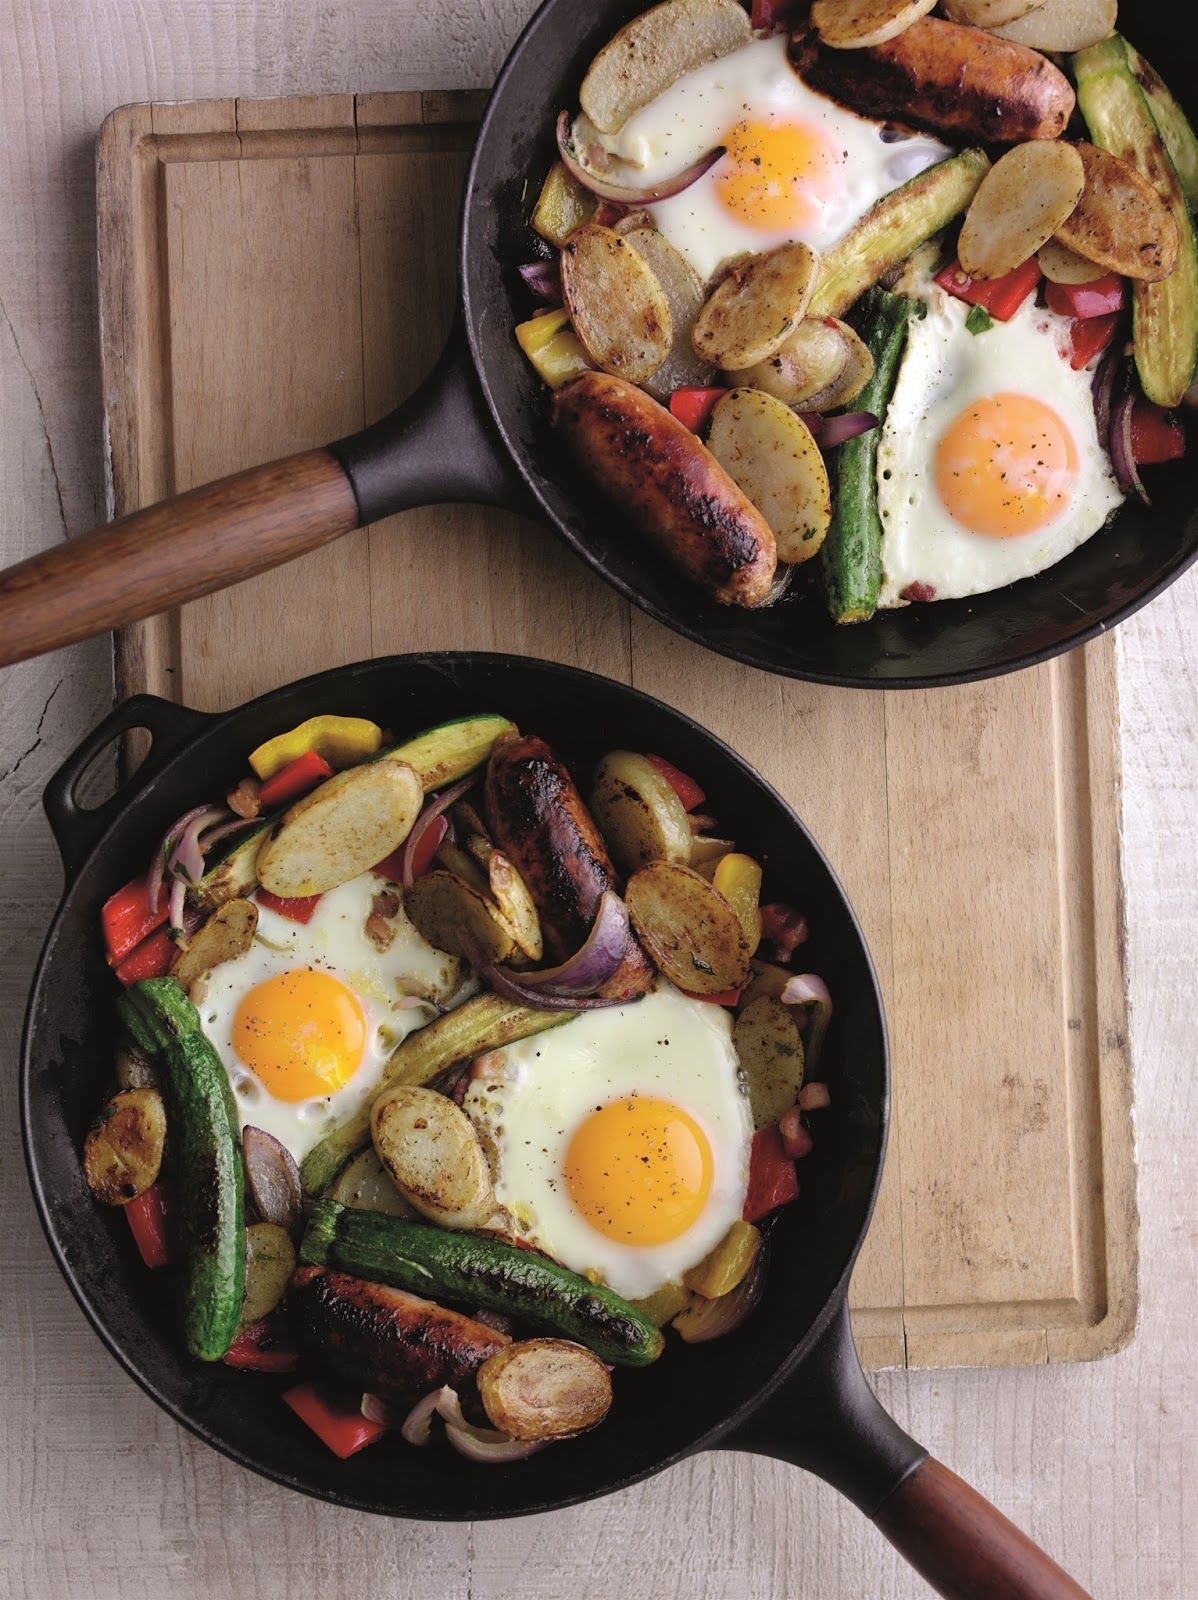 How To Make A One Pan Spicy Farmer's Breakfast